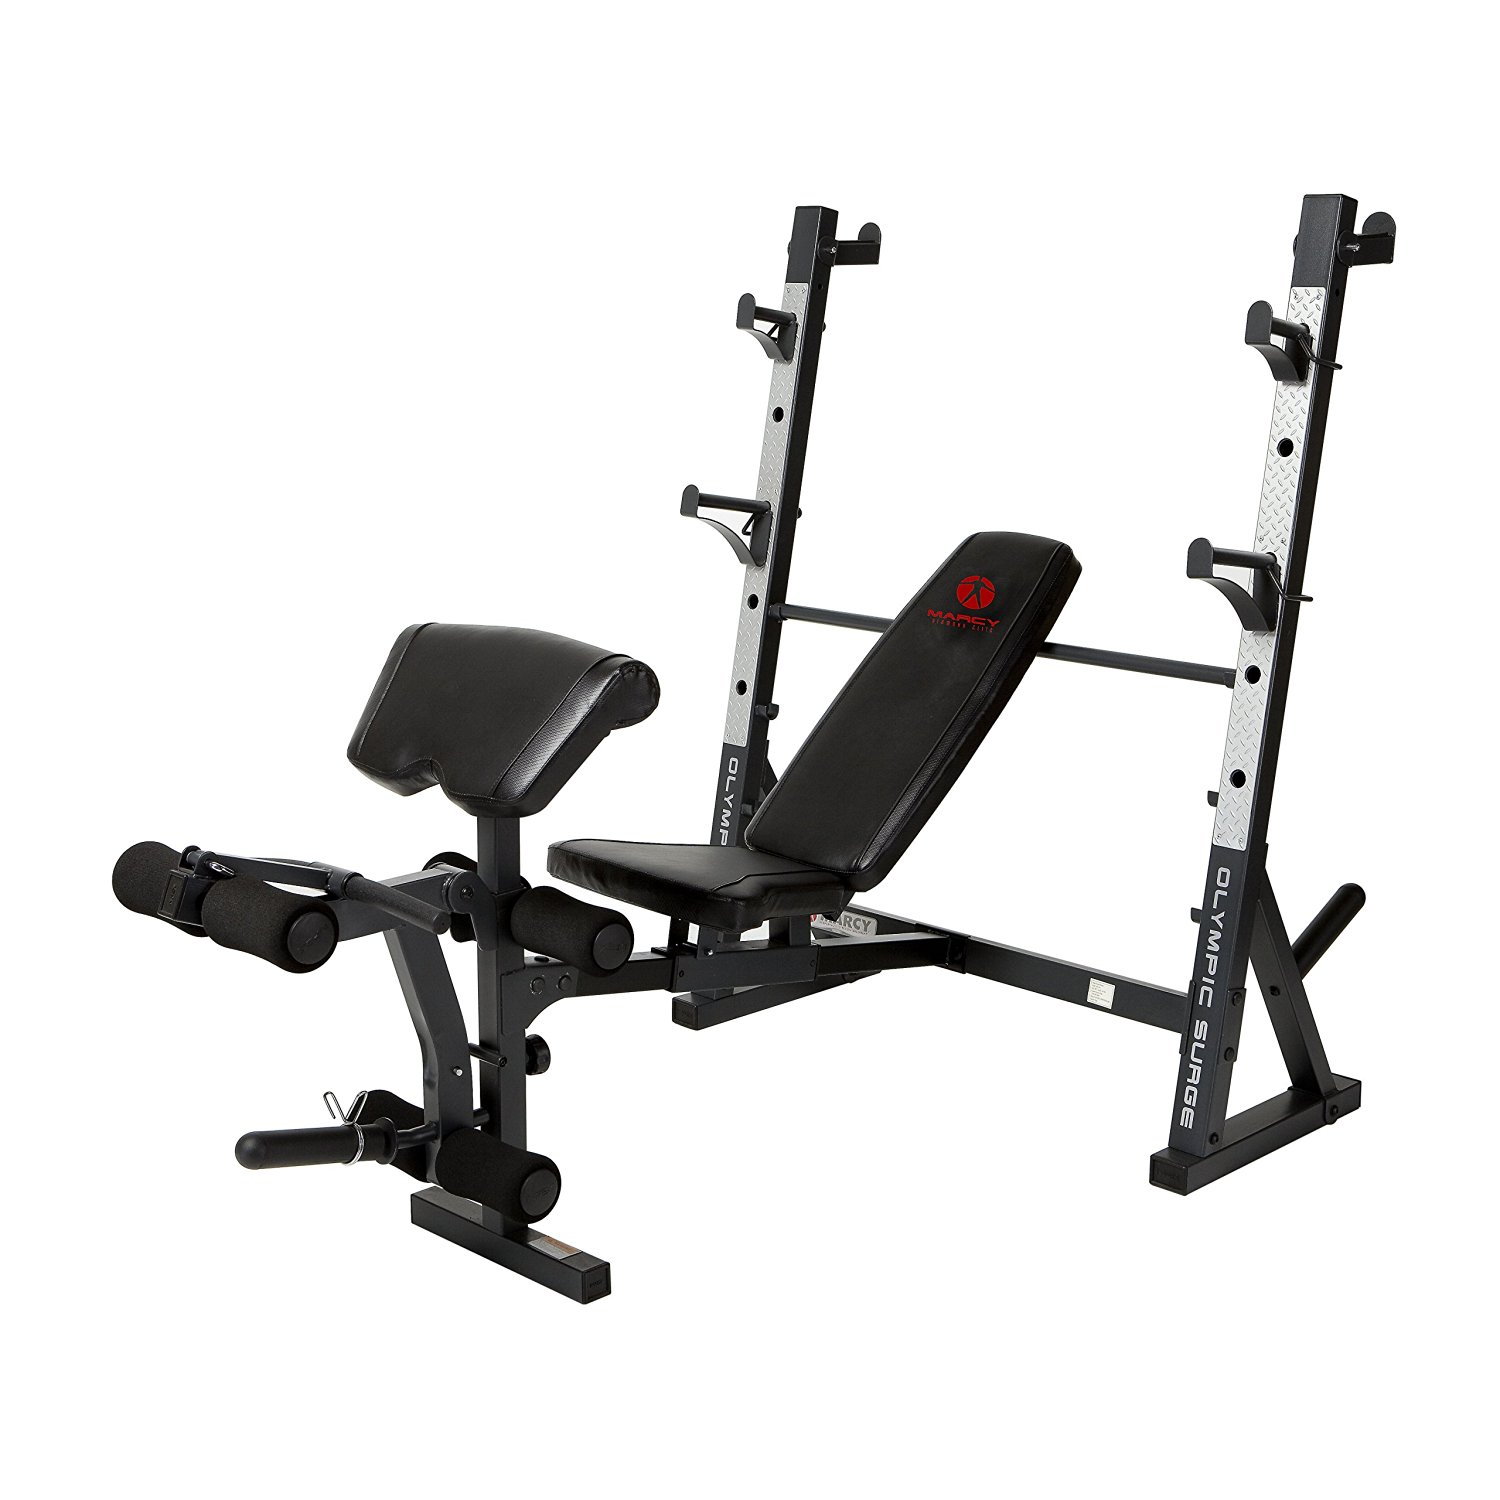 with dp amazon outdoors bench cap strength sports rack press com olympic weight benches barbell squat adjustable